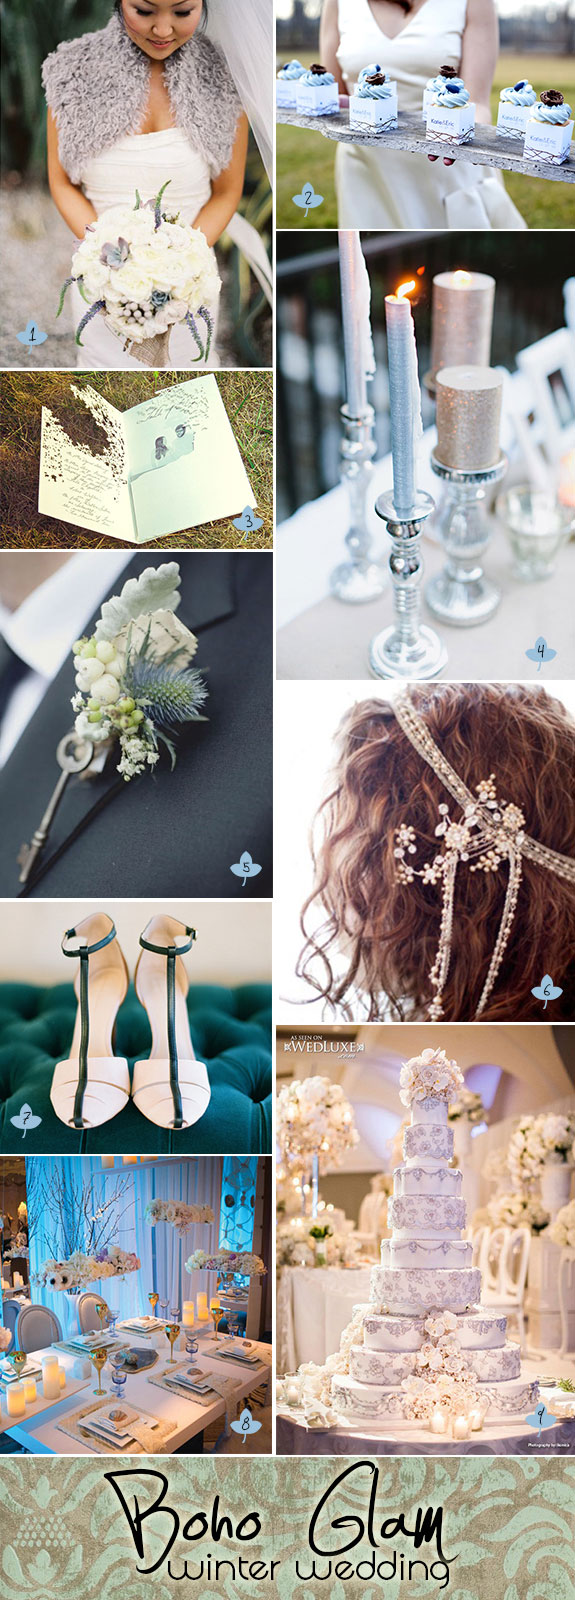 Bohemian glam winter wedding inspiration board with rich textures and modern hip colors.